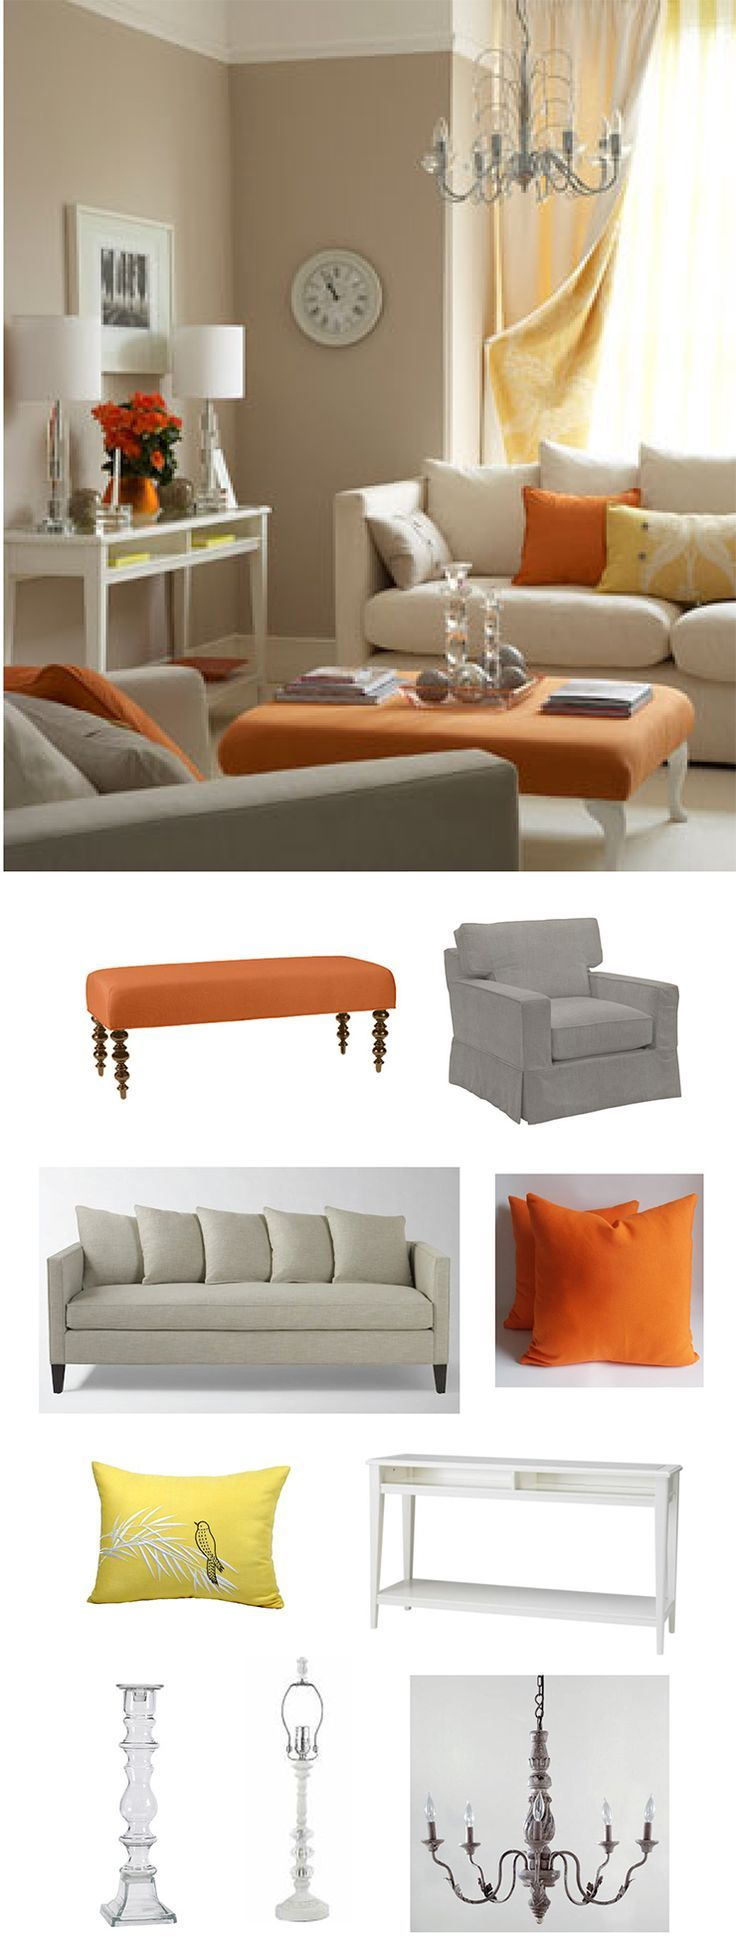 Orange obsession interior design community living room - Orange and grey living room ideas ...